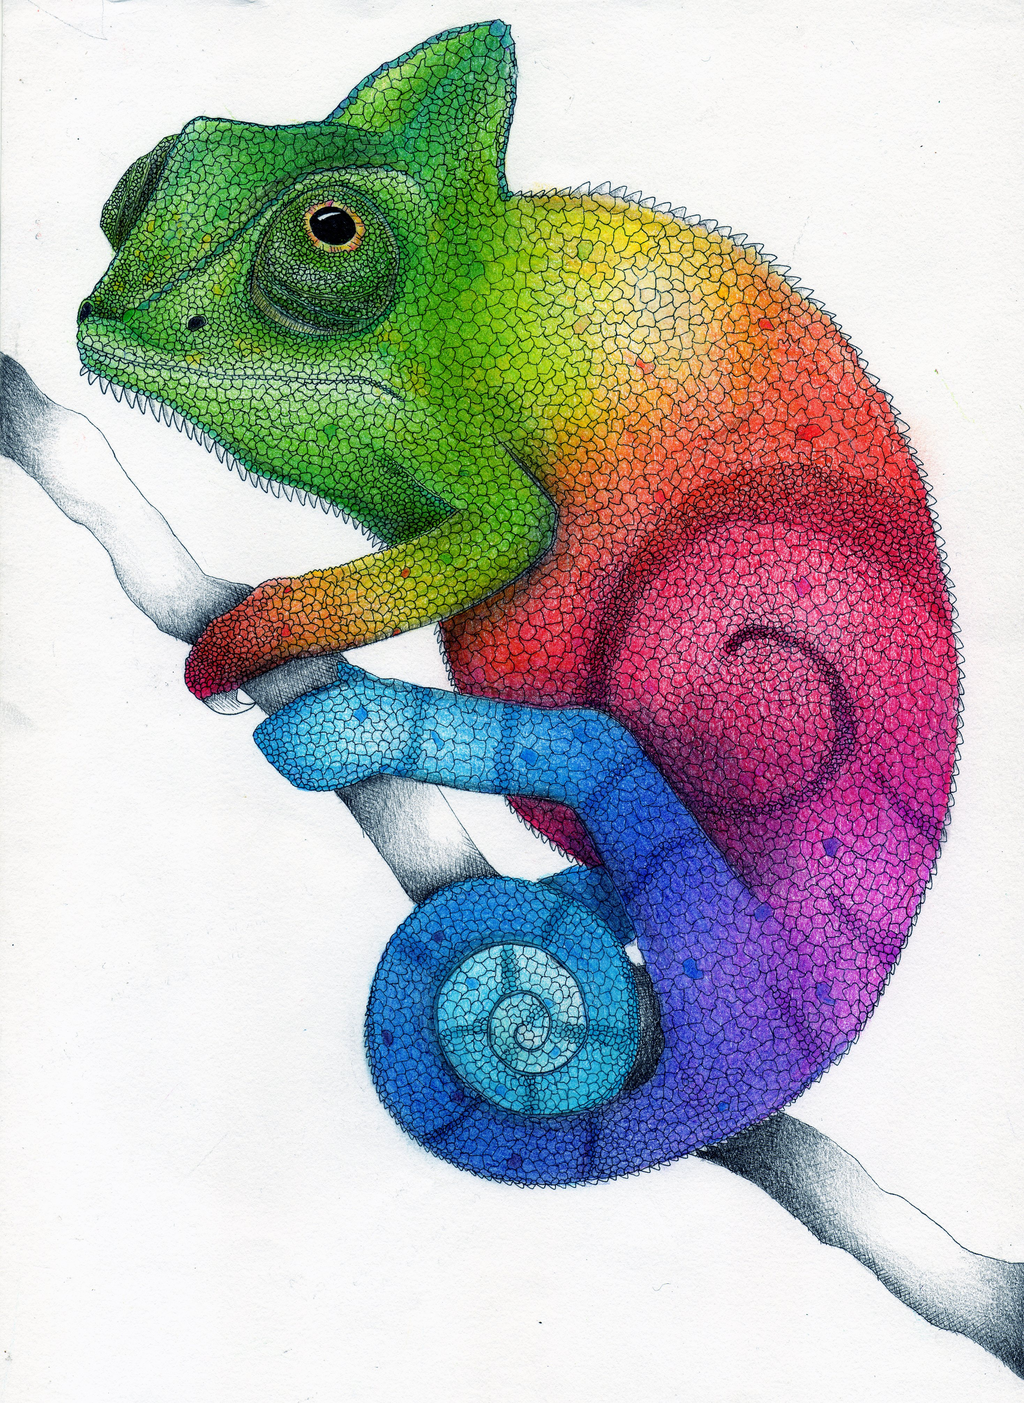 Rainbow Chameleon Color Pencil Drawing by Karen754 on